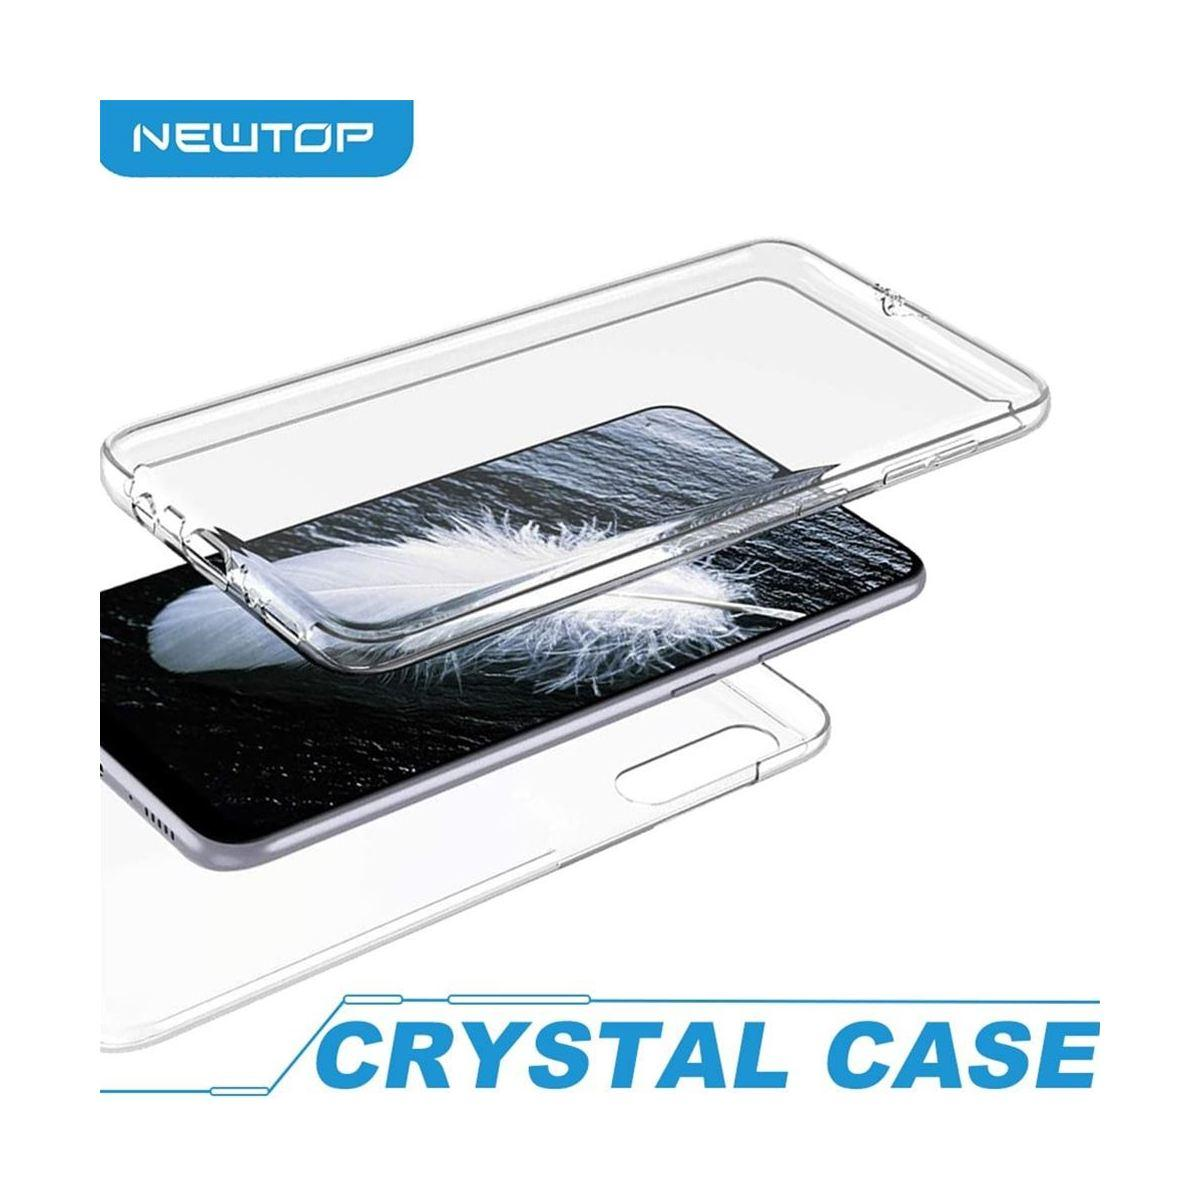 Newtop crystal case cover huawei p10 (hw - p10 - 8.trasparente)